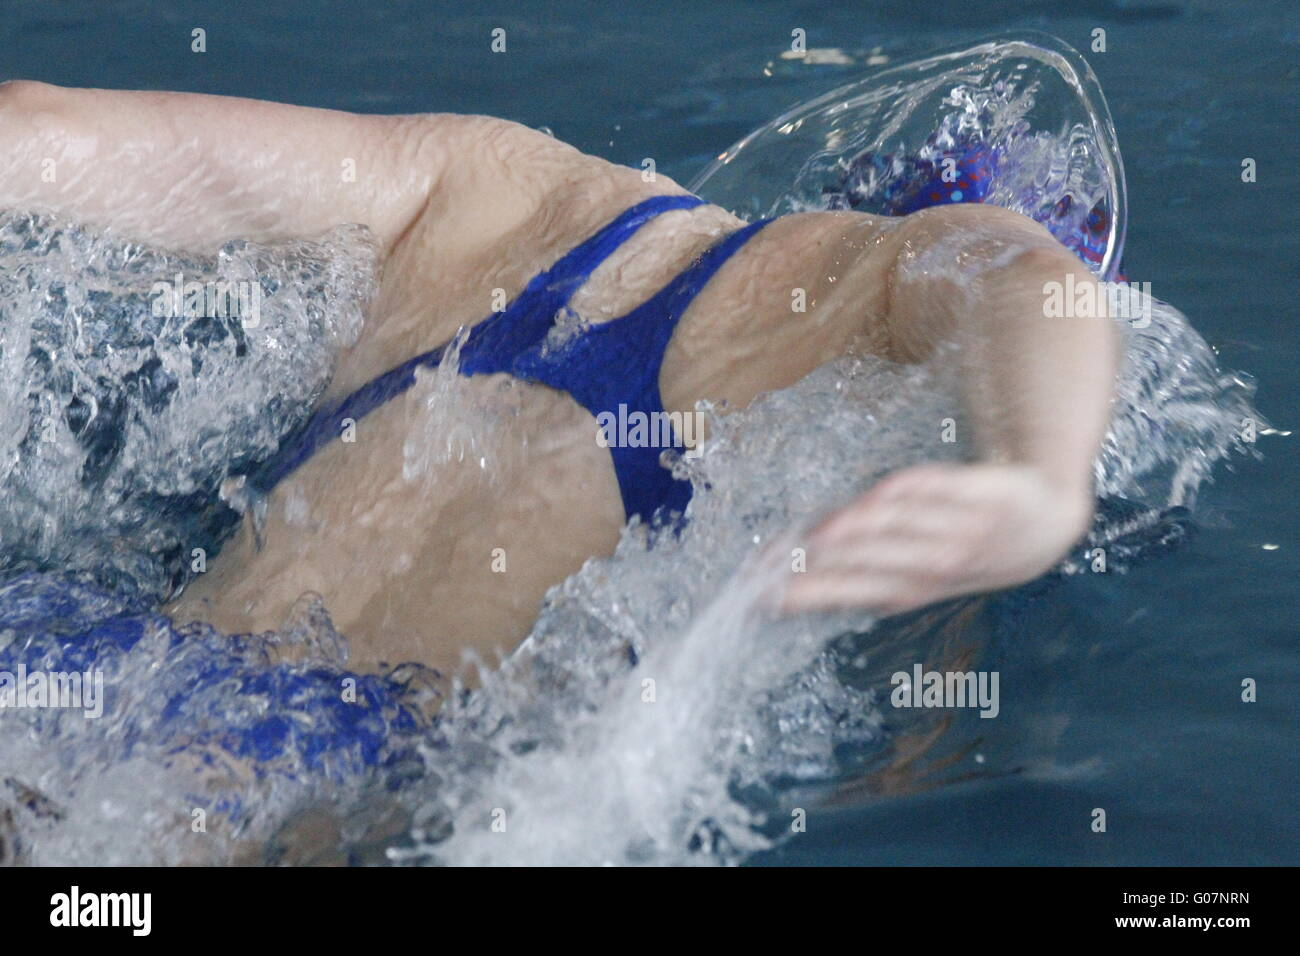 Butterfly swimmer - Stock Image